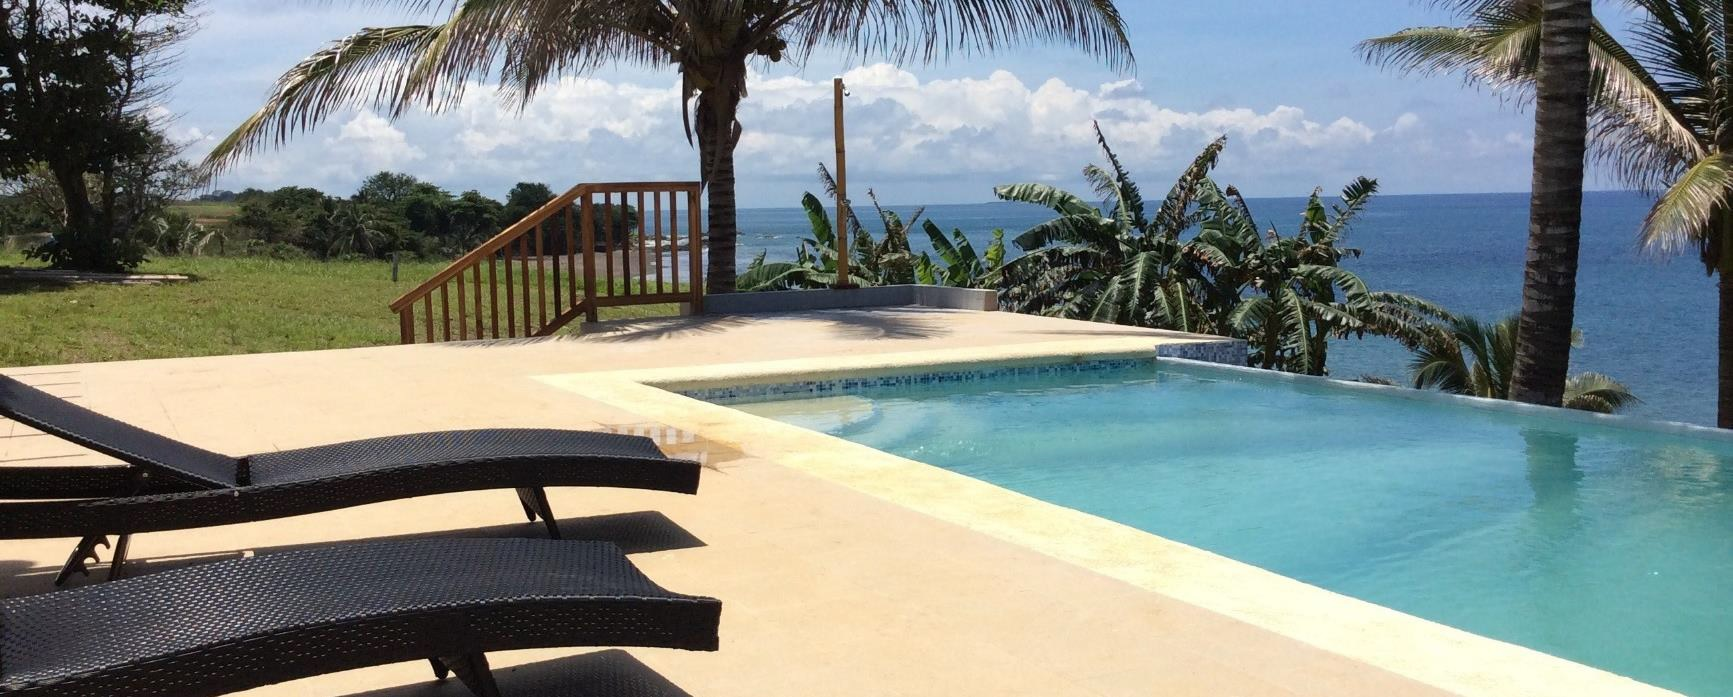 Oceanfront_lots_for_sale_Panama-1.jpg